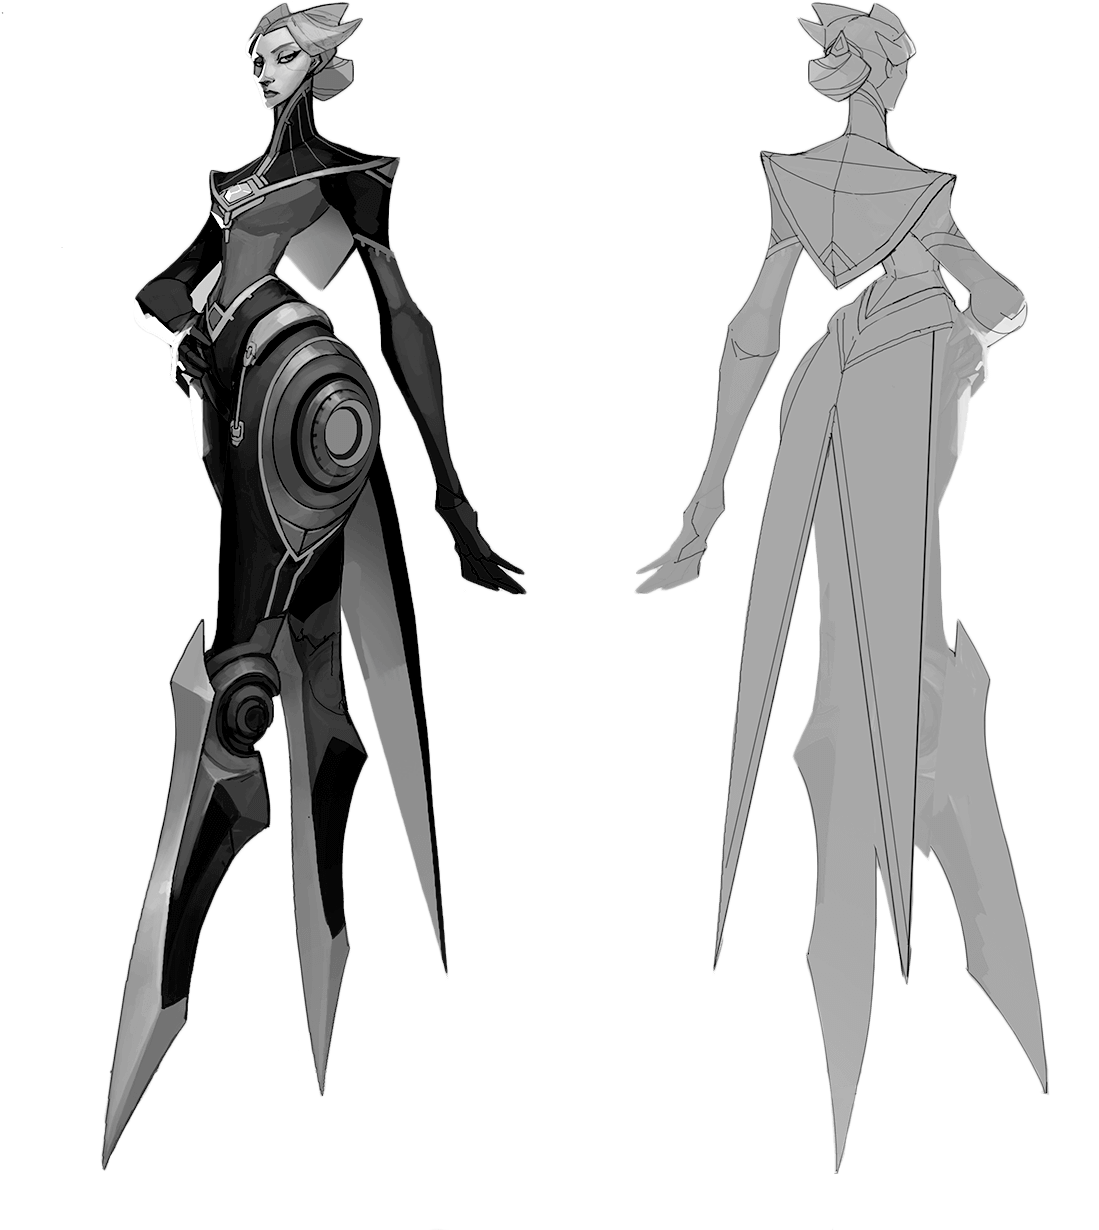 Download Hd Camille Sketch League Of Legends Human Camille Transparent Png Image Nicepng Com